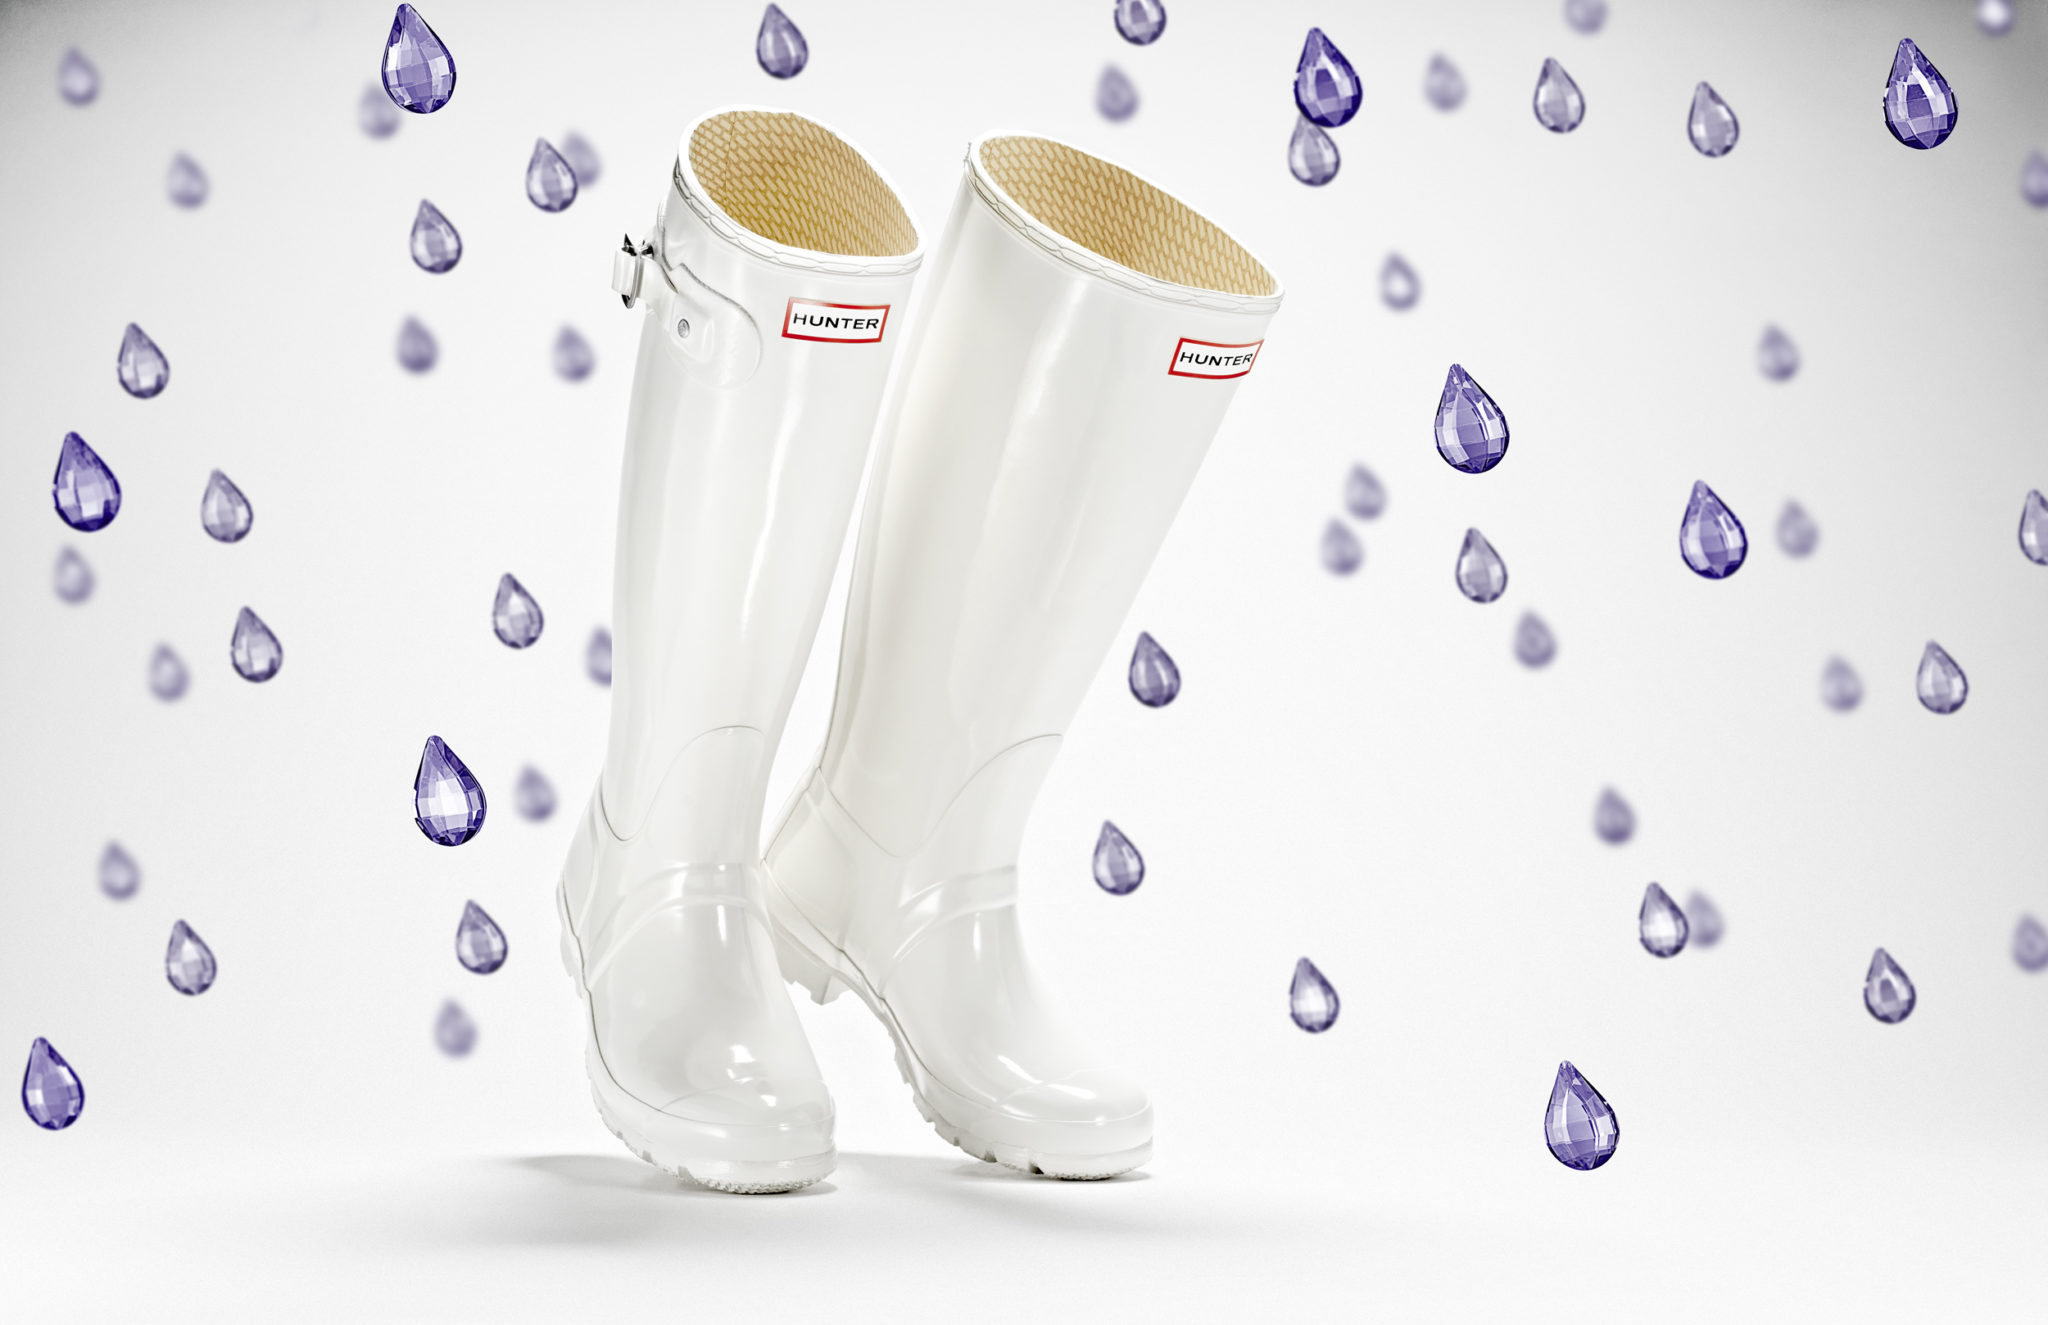 advertising still life photograph of white hunter boots surrounded by purple jewel raindrops